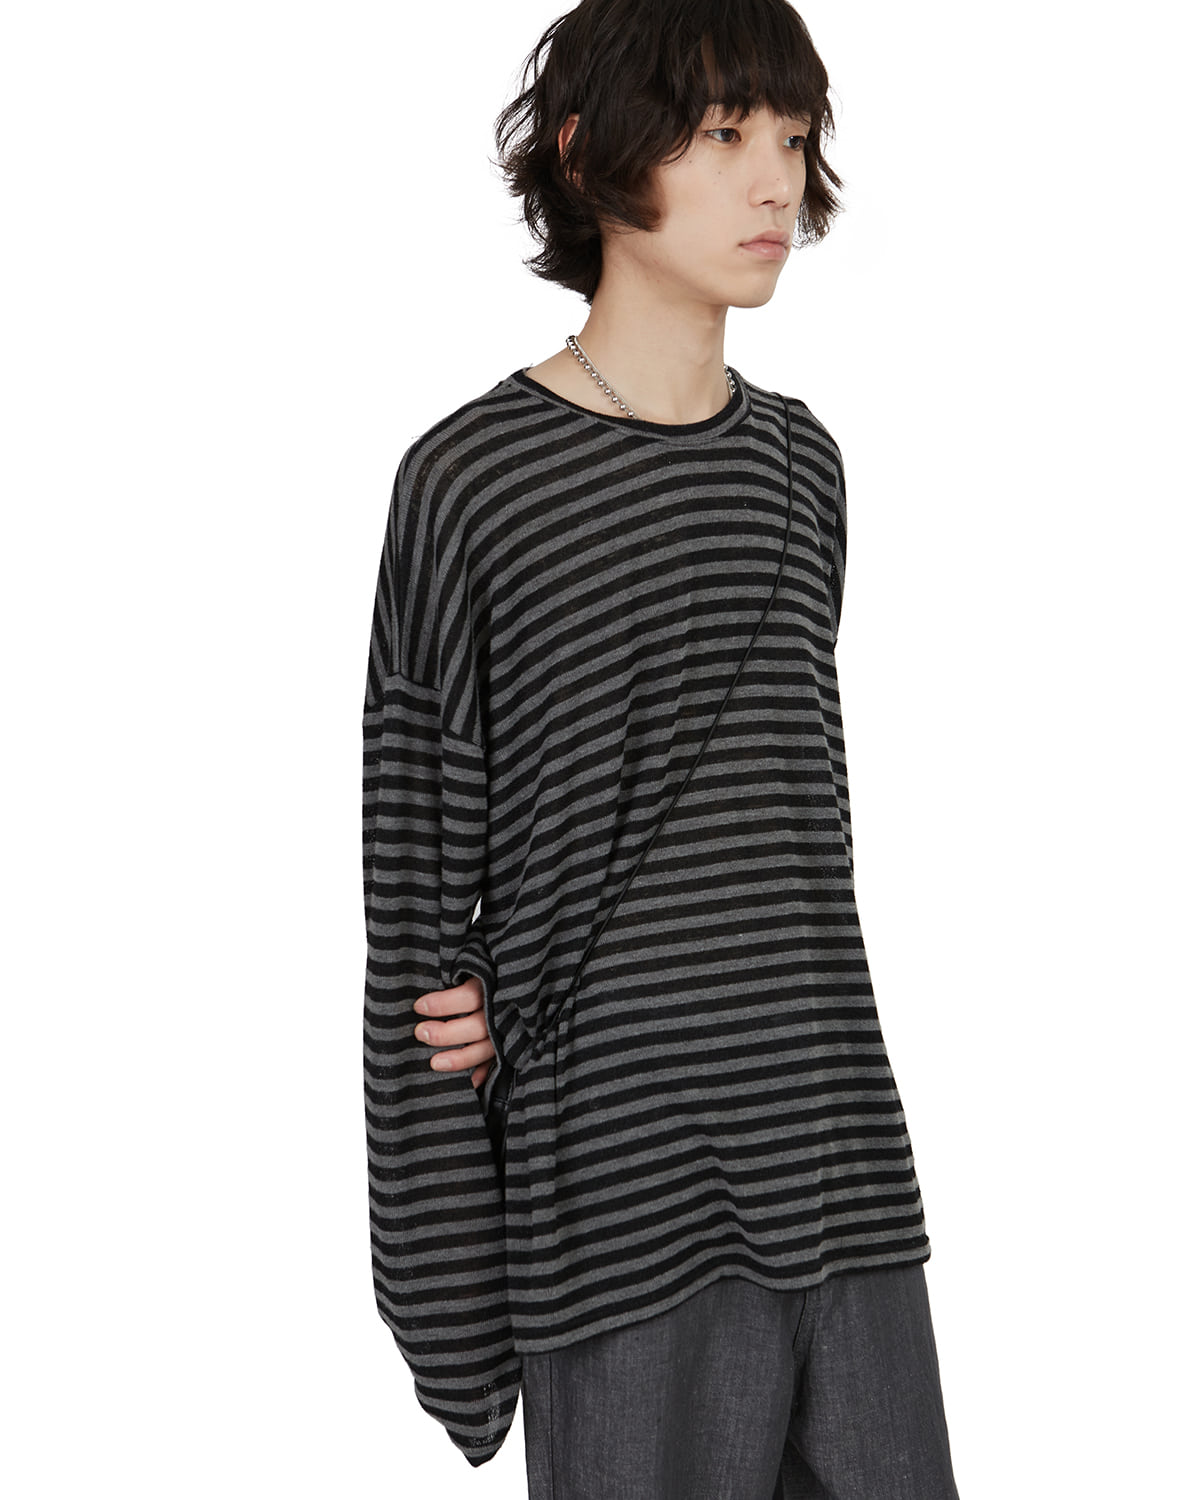 raucohouse-LINEN STRIPE LONG SLEEVE T - RAUCO HOUSE♡韓國男裝上衣